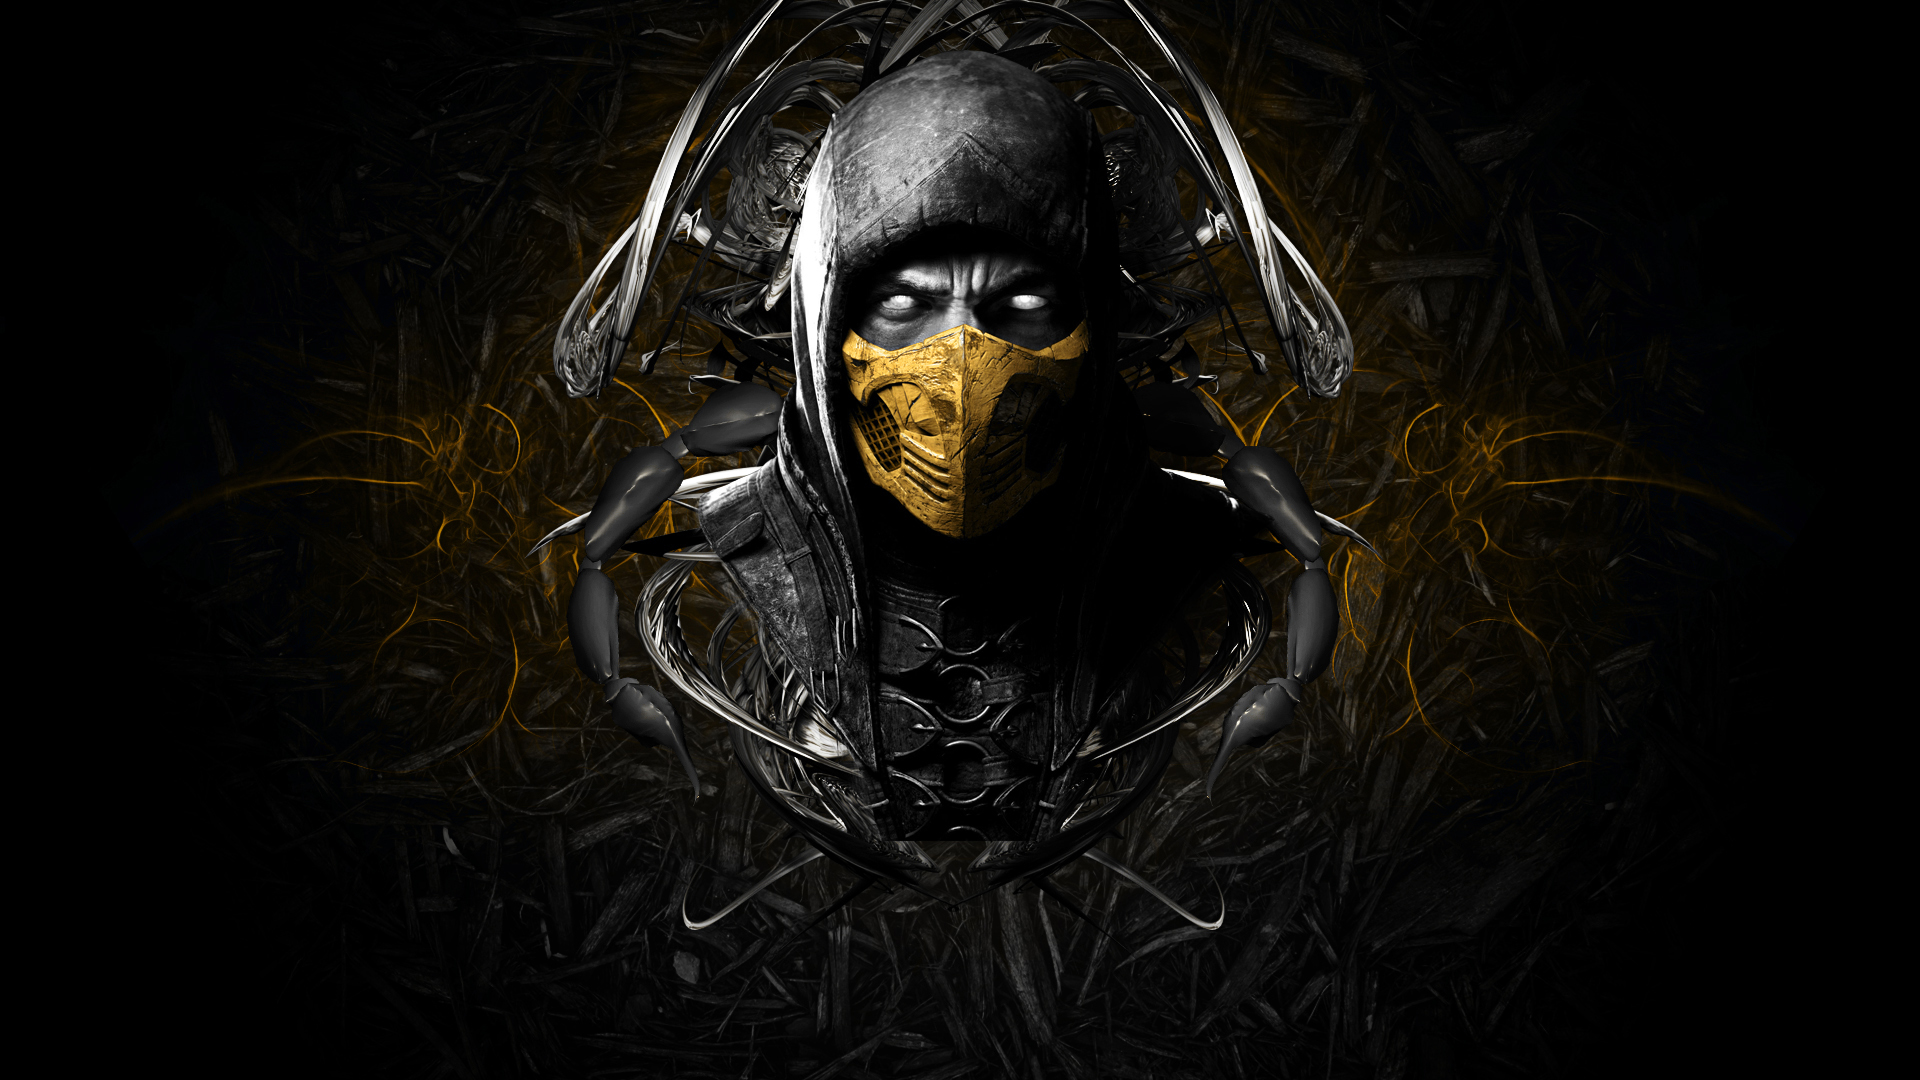 Wallpaper mortal kombat x scorpion ninja wallpapers games   download 1920x1080